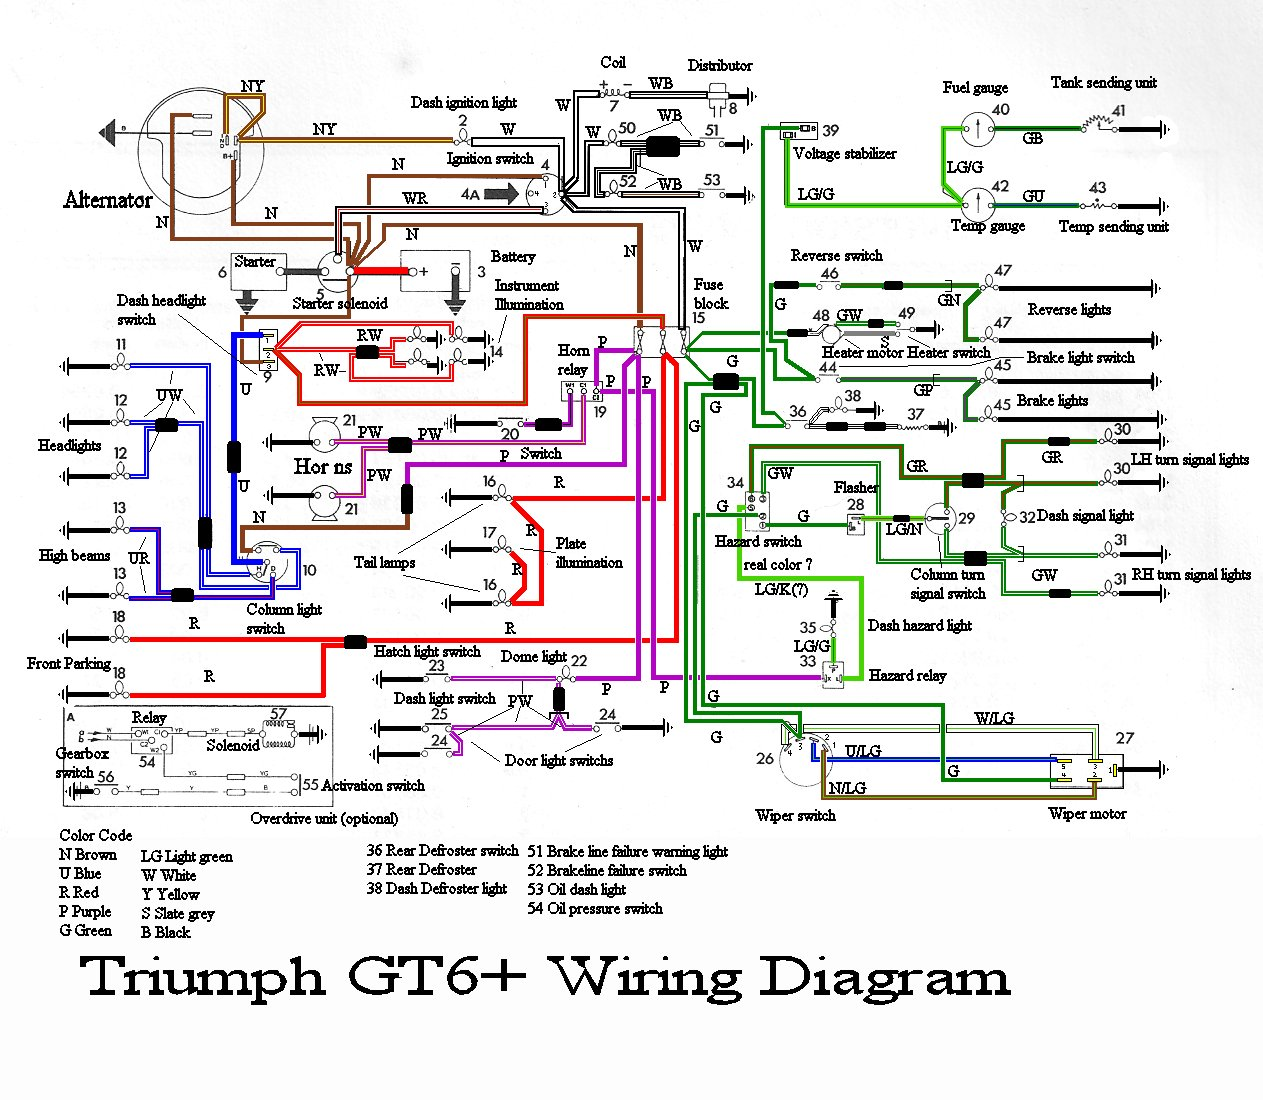 triumph tr6 pi wiring diagram schecter diamond series gt6 43 colored